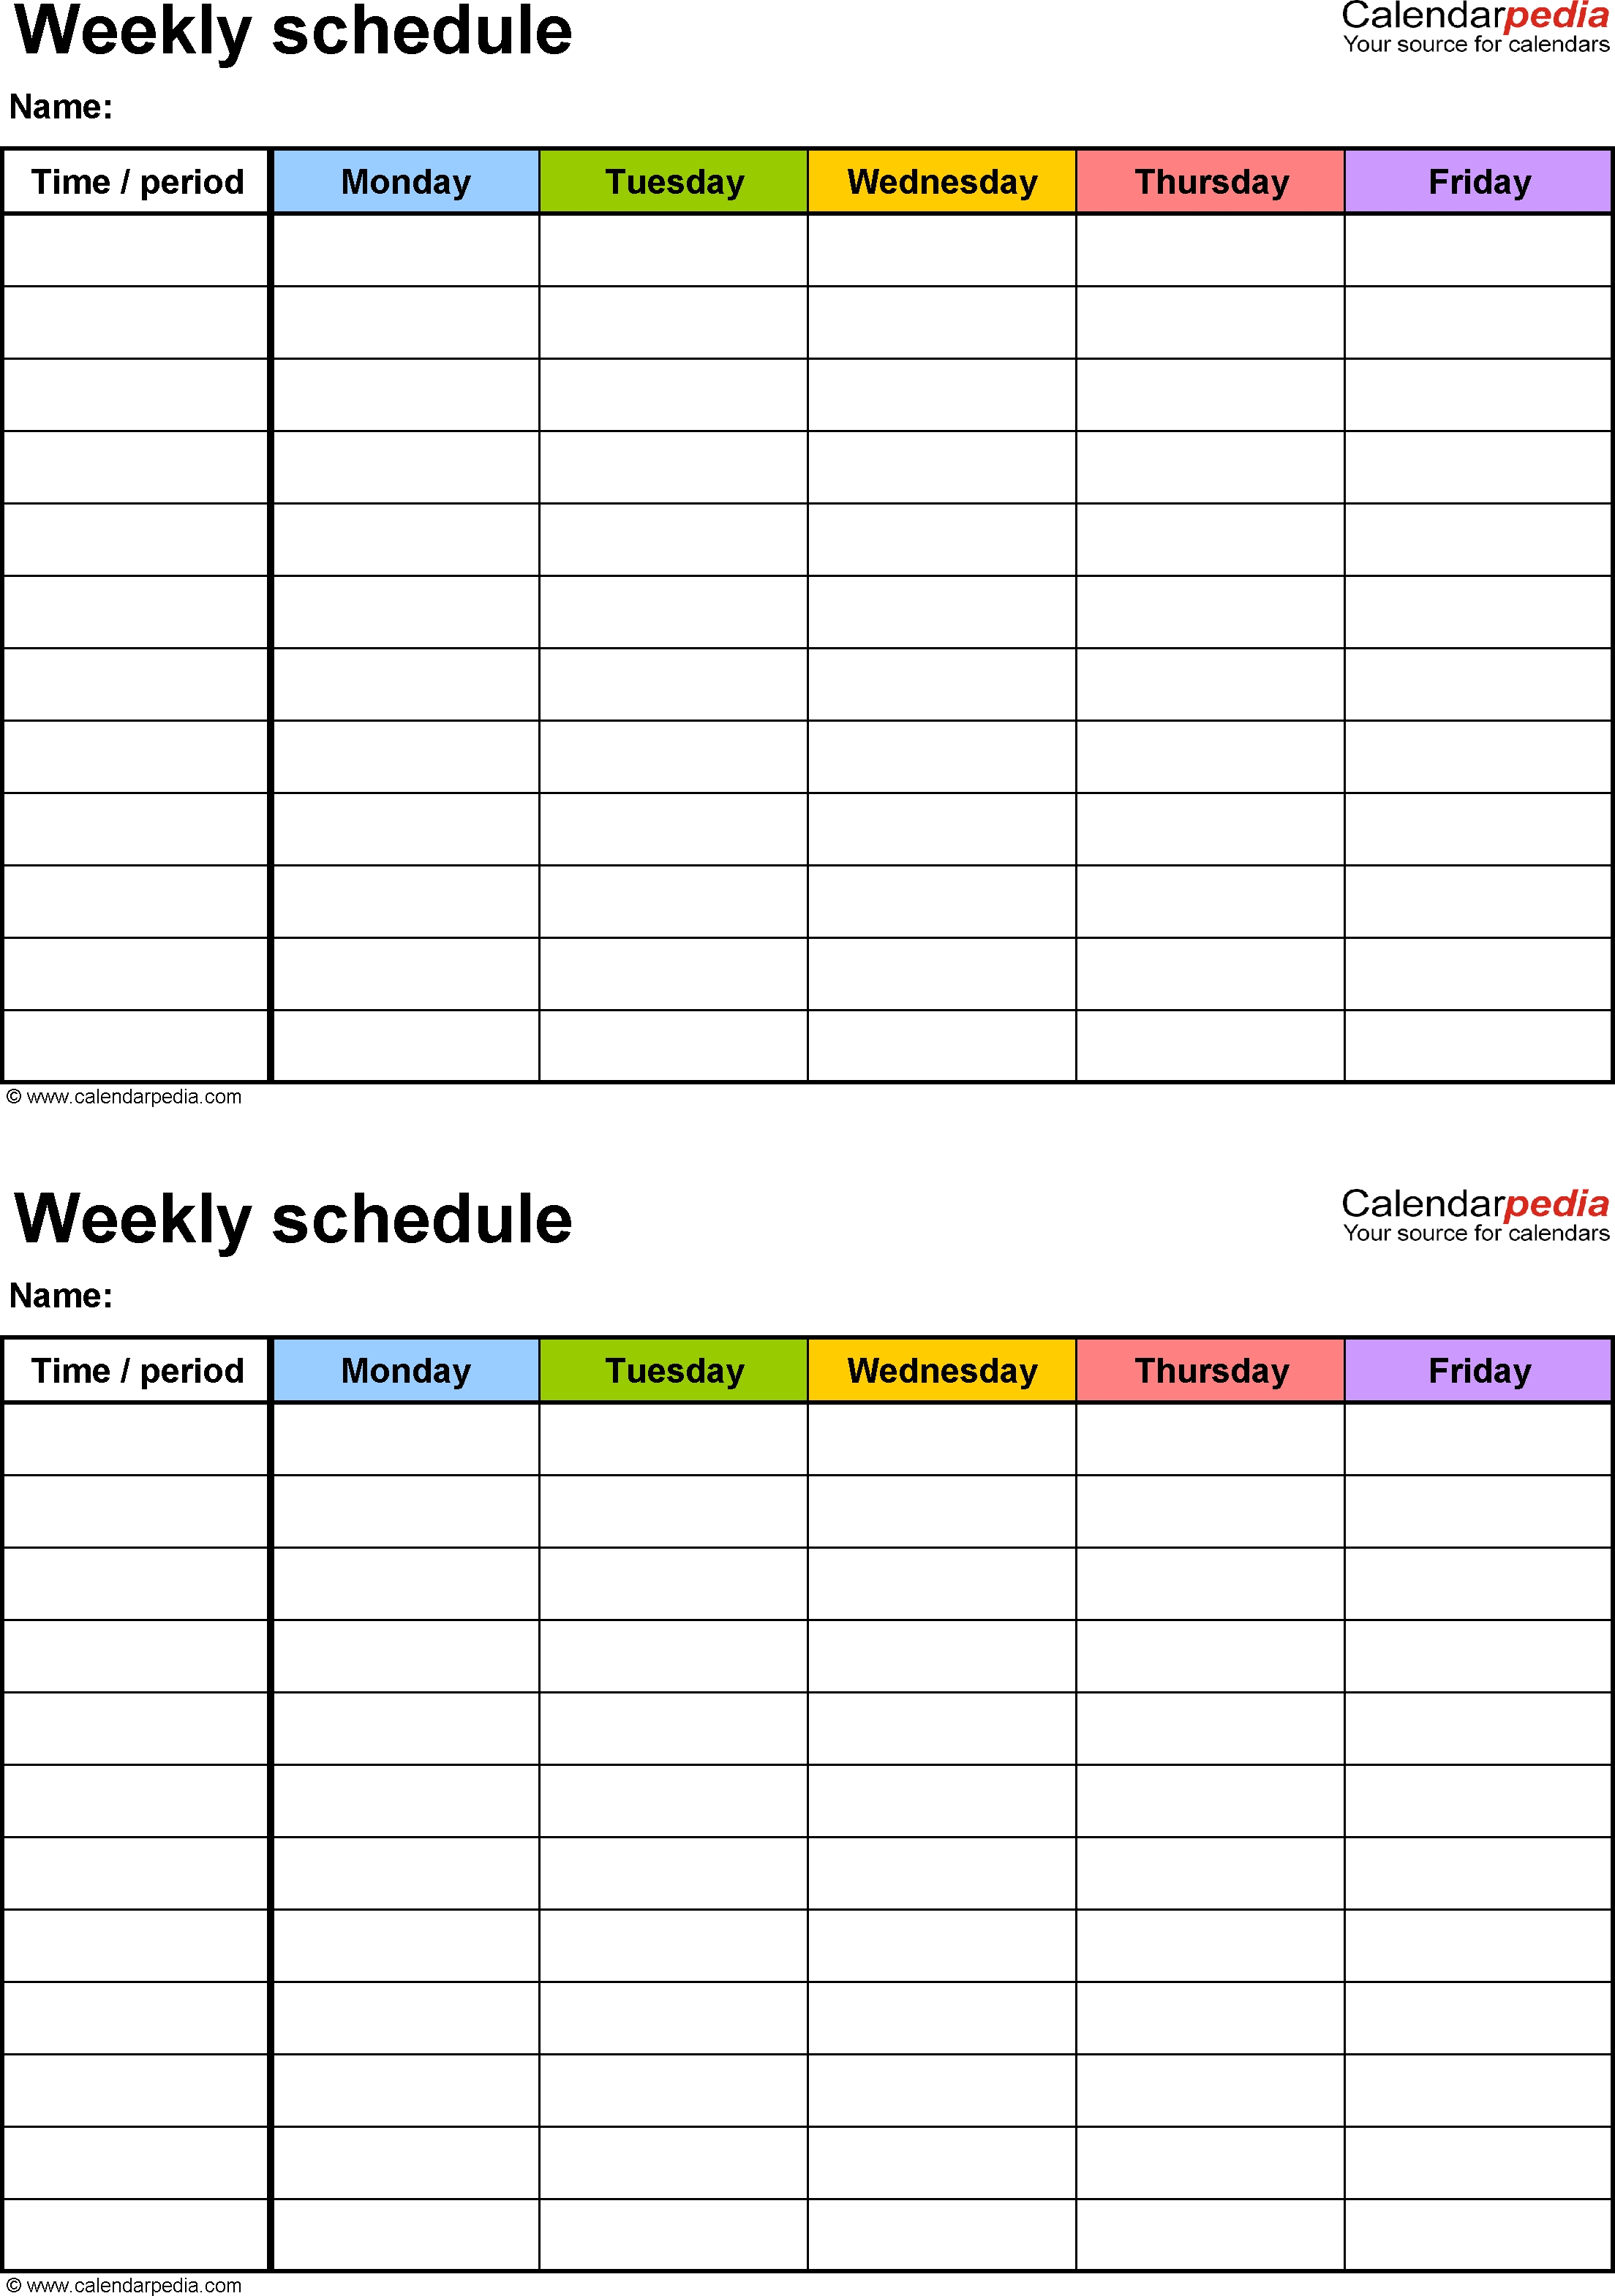 Free Weekly Schedule Templates For Pdf - 18 Templates inside Pdf Free Monday - Friday Weekly Planner